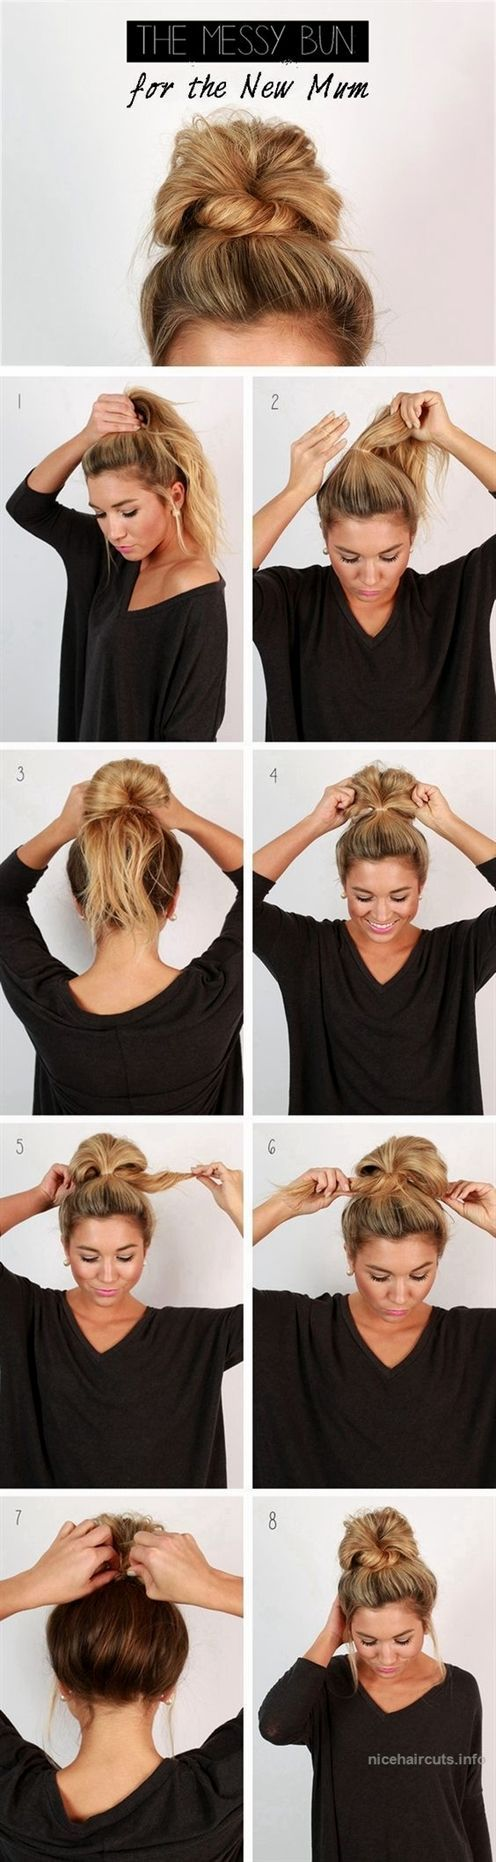 Fast easy messy bun updo for the new mum – Step by Step Hair Tutorial -… Fast easy messy bun updo for the new mum – Step by Step Hair Tutorial